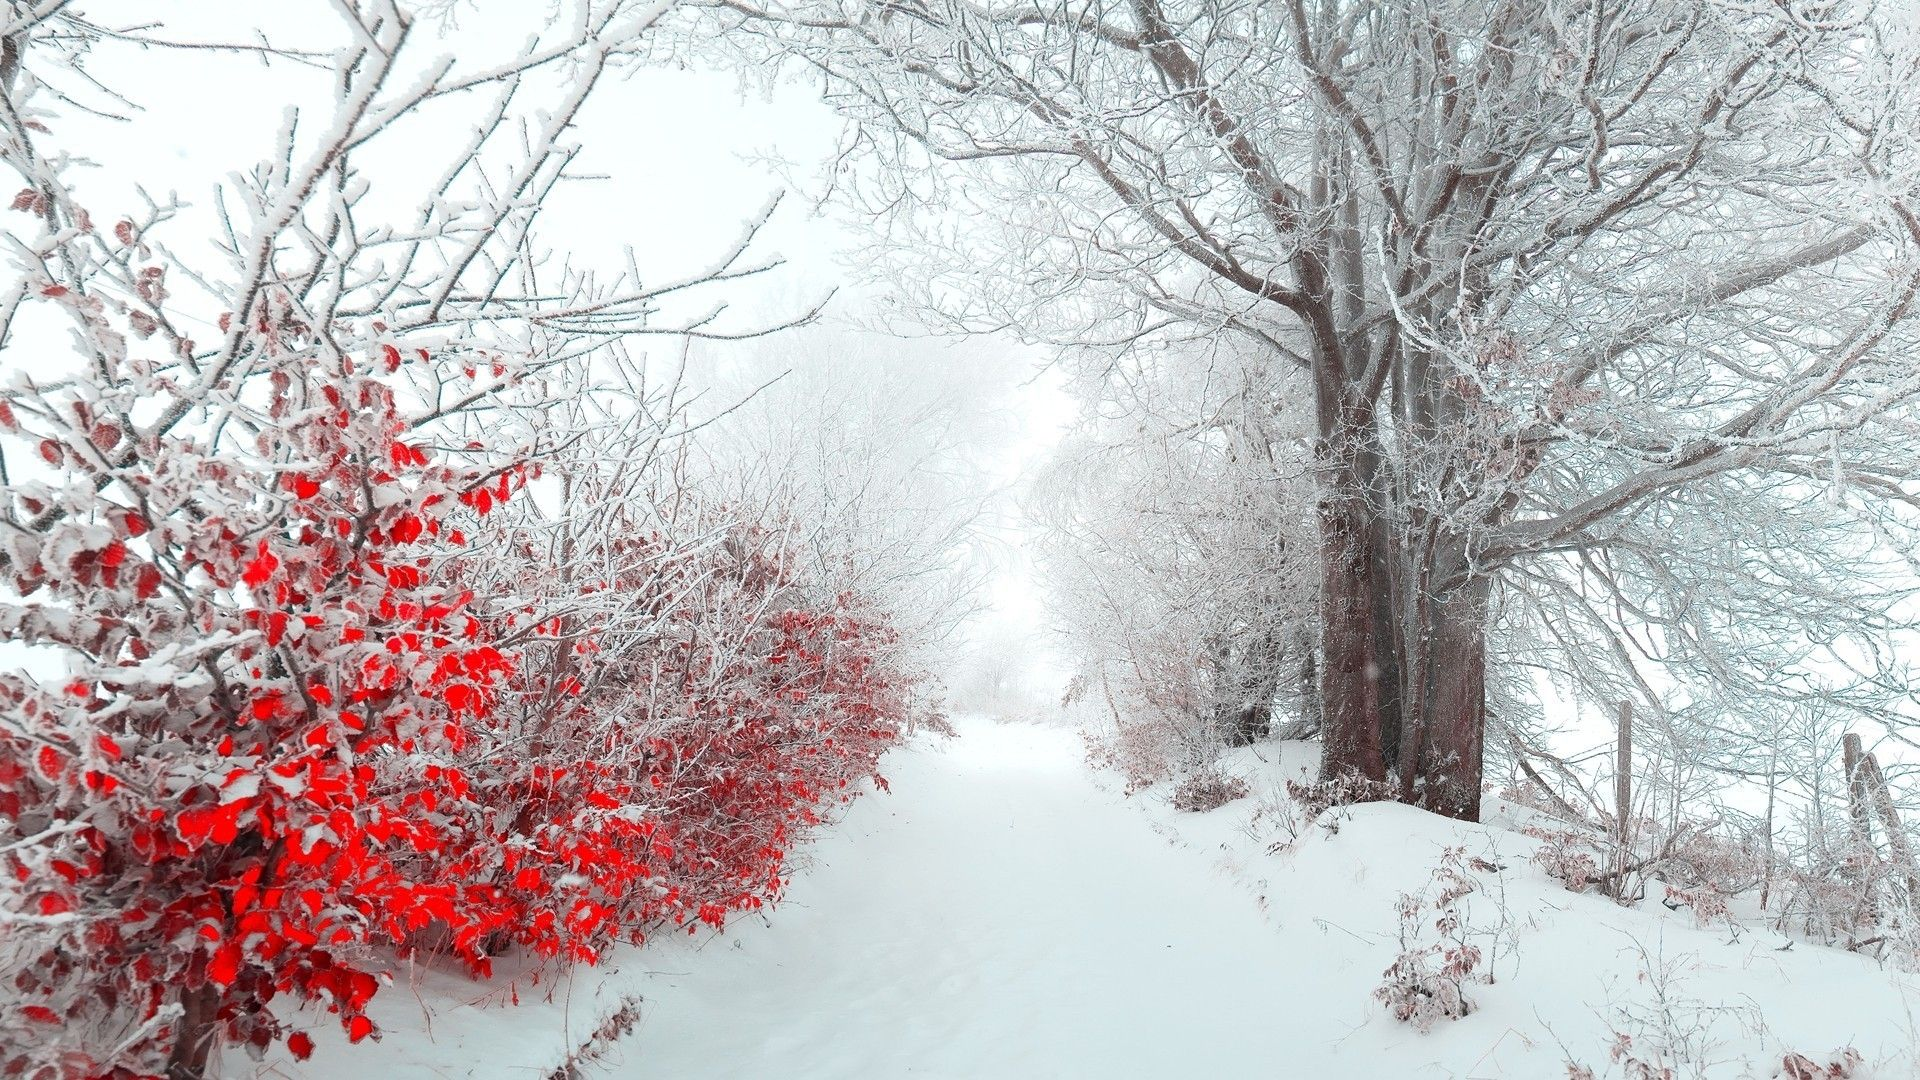 High Quality Images Collection of Winter Flower: Iago Kiley